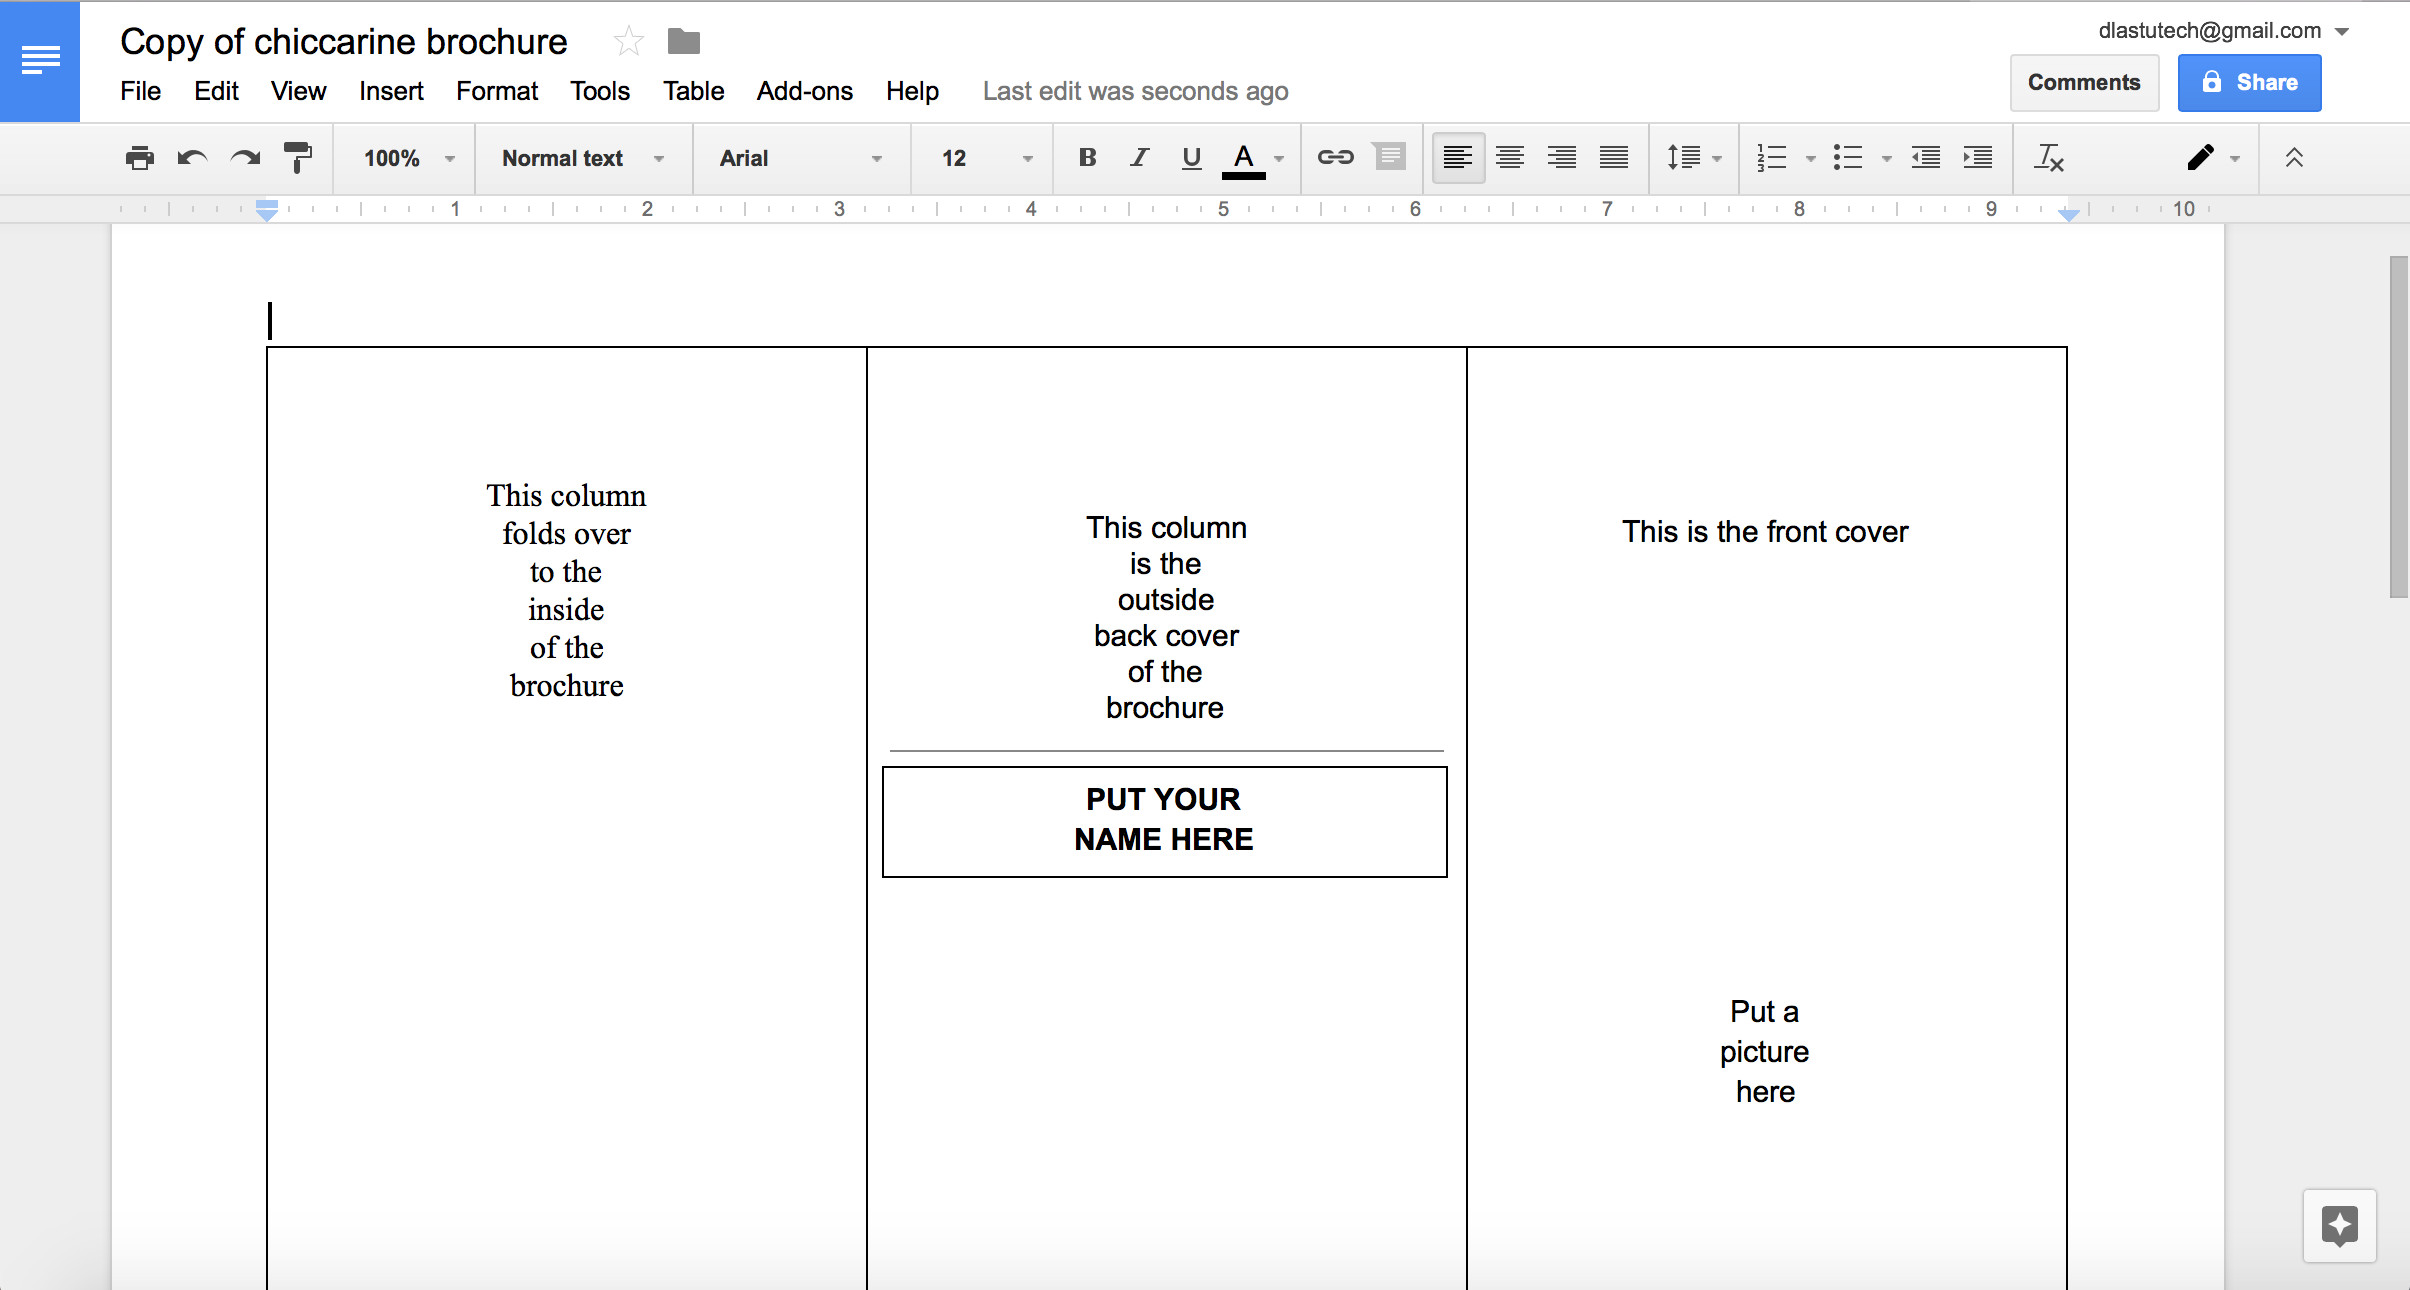 Google Docs Brochure Templates Tutorial Making A Brochure Using Google Docs From A